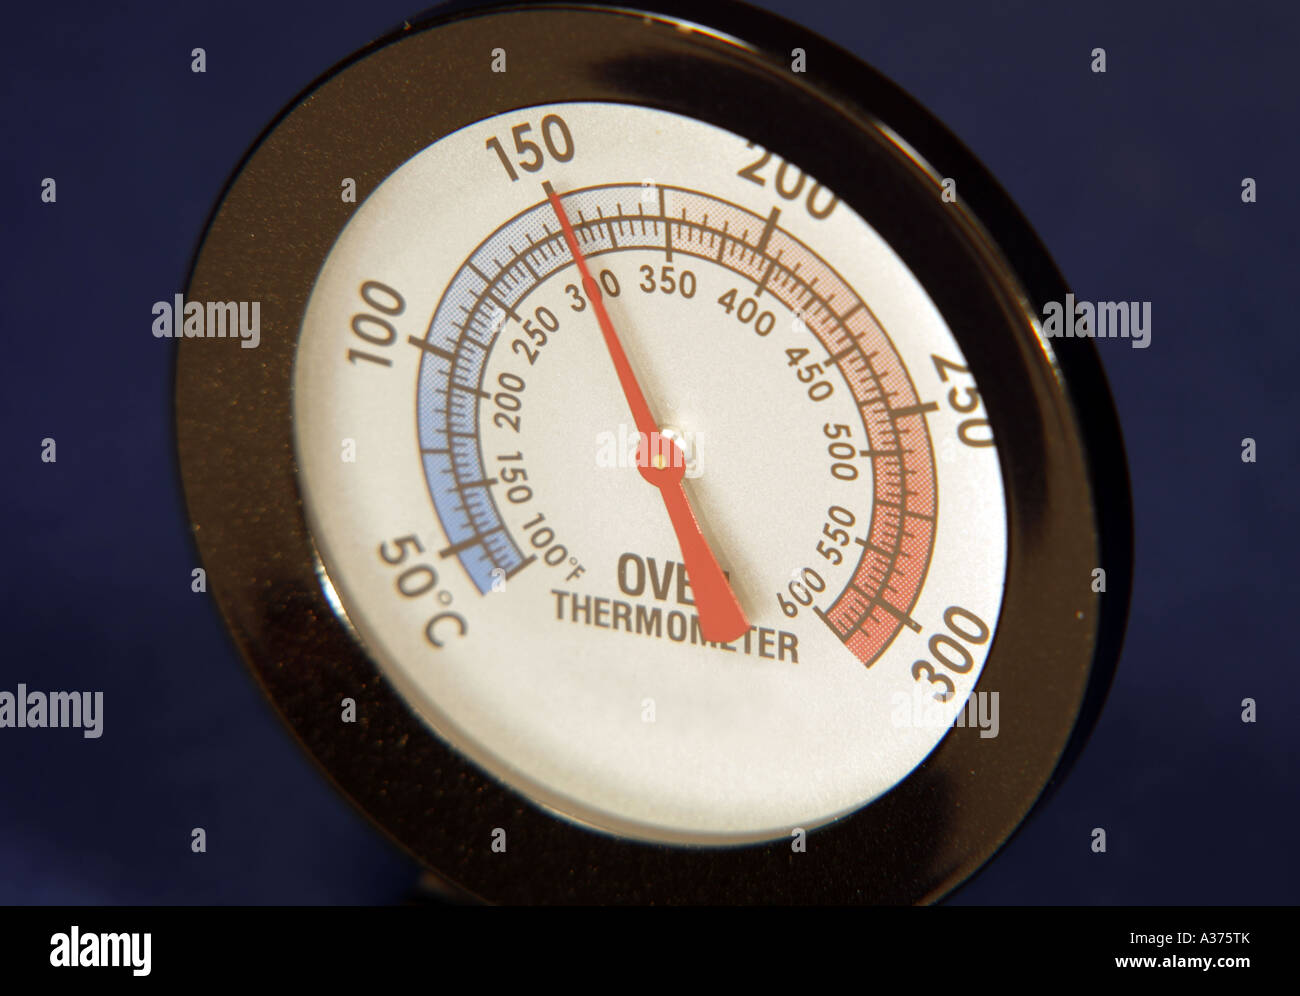 Oven Thermometer Reading 150 Degrees Centigrade Stock